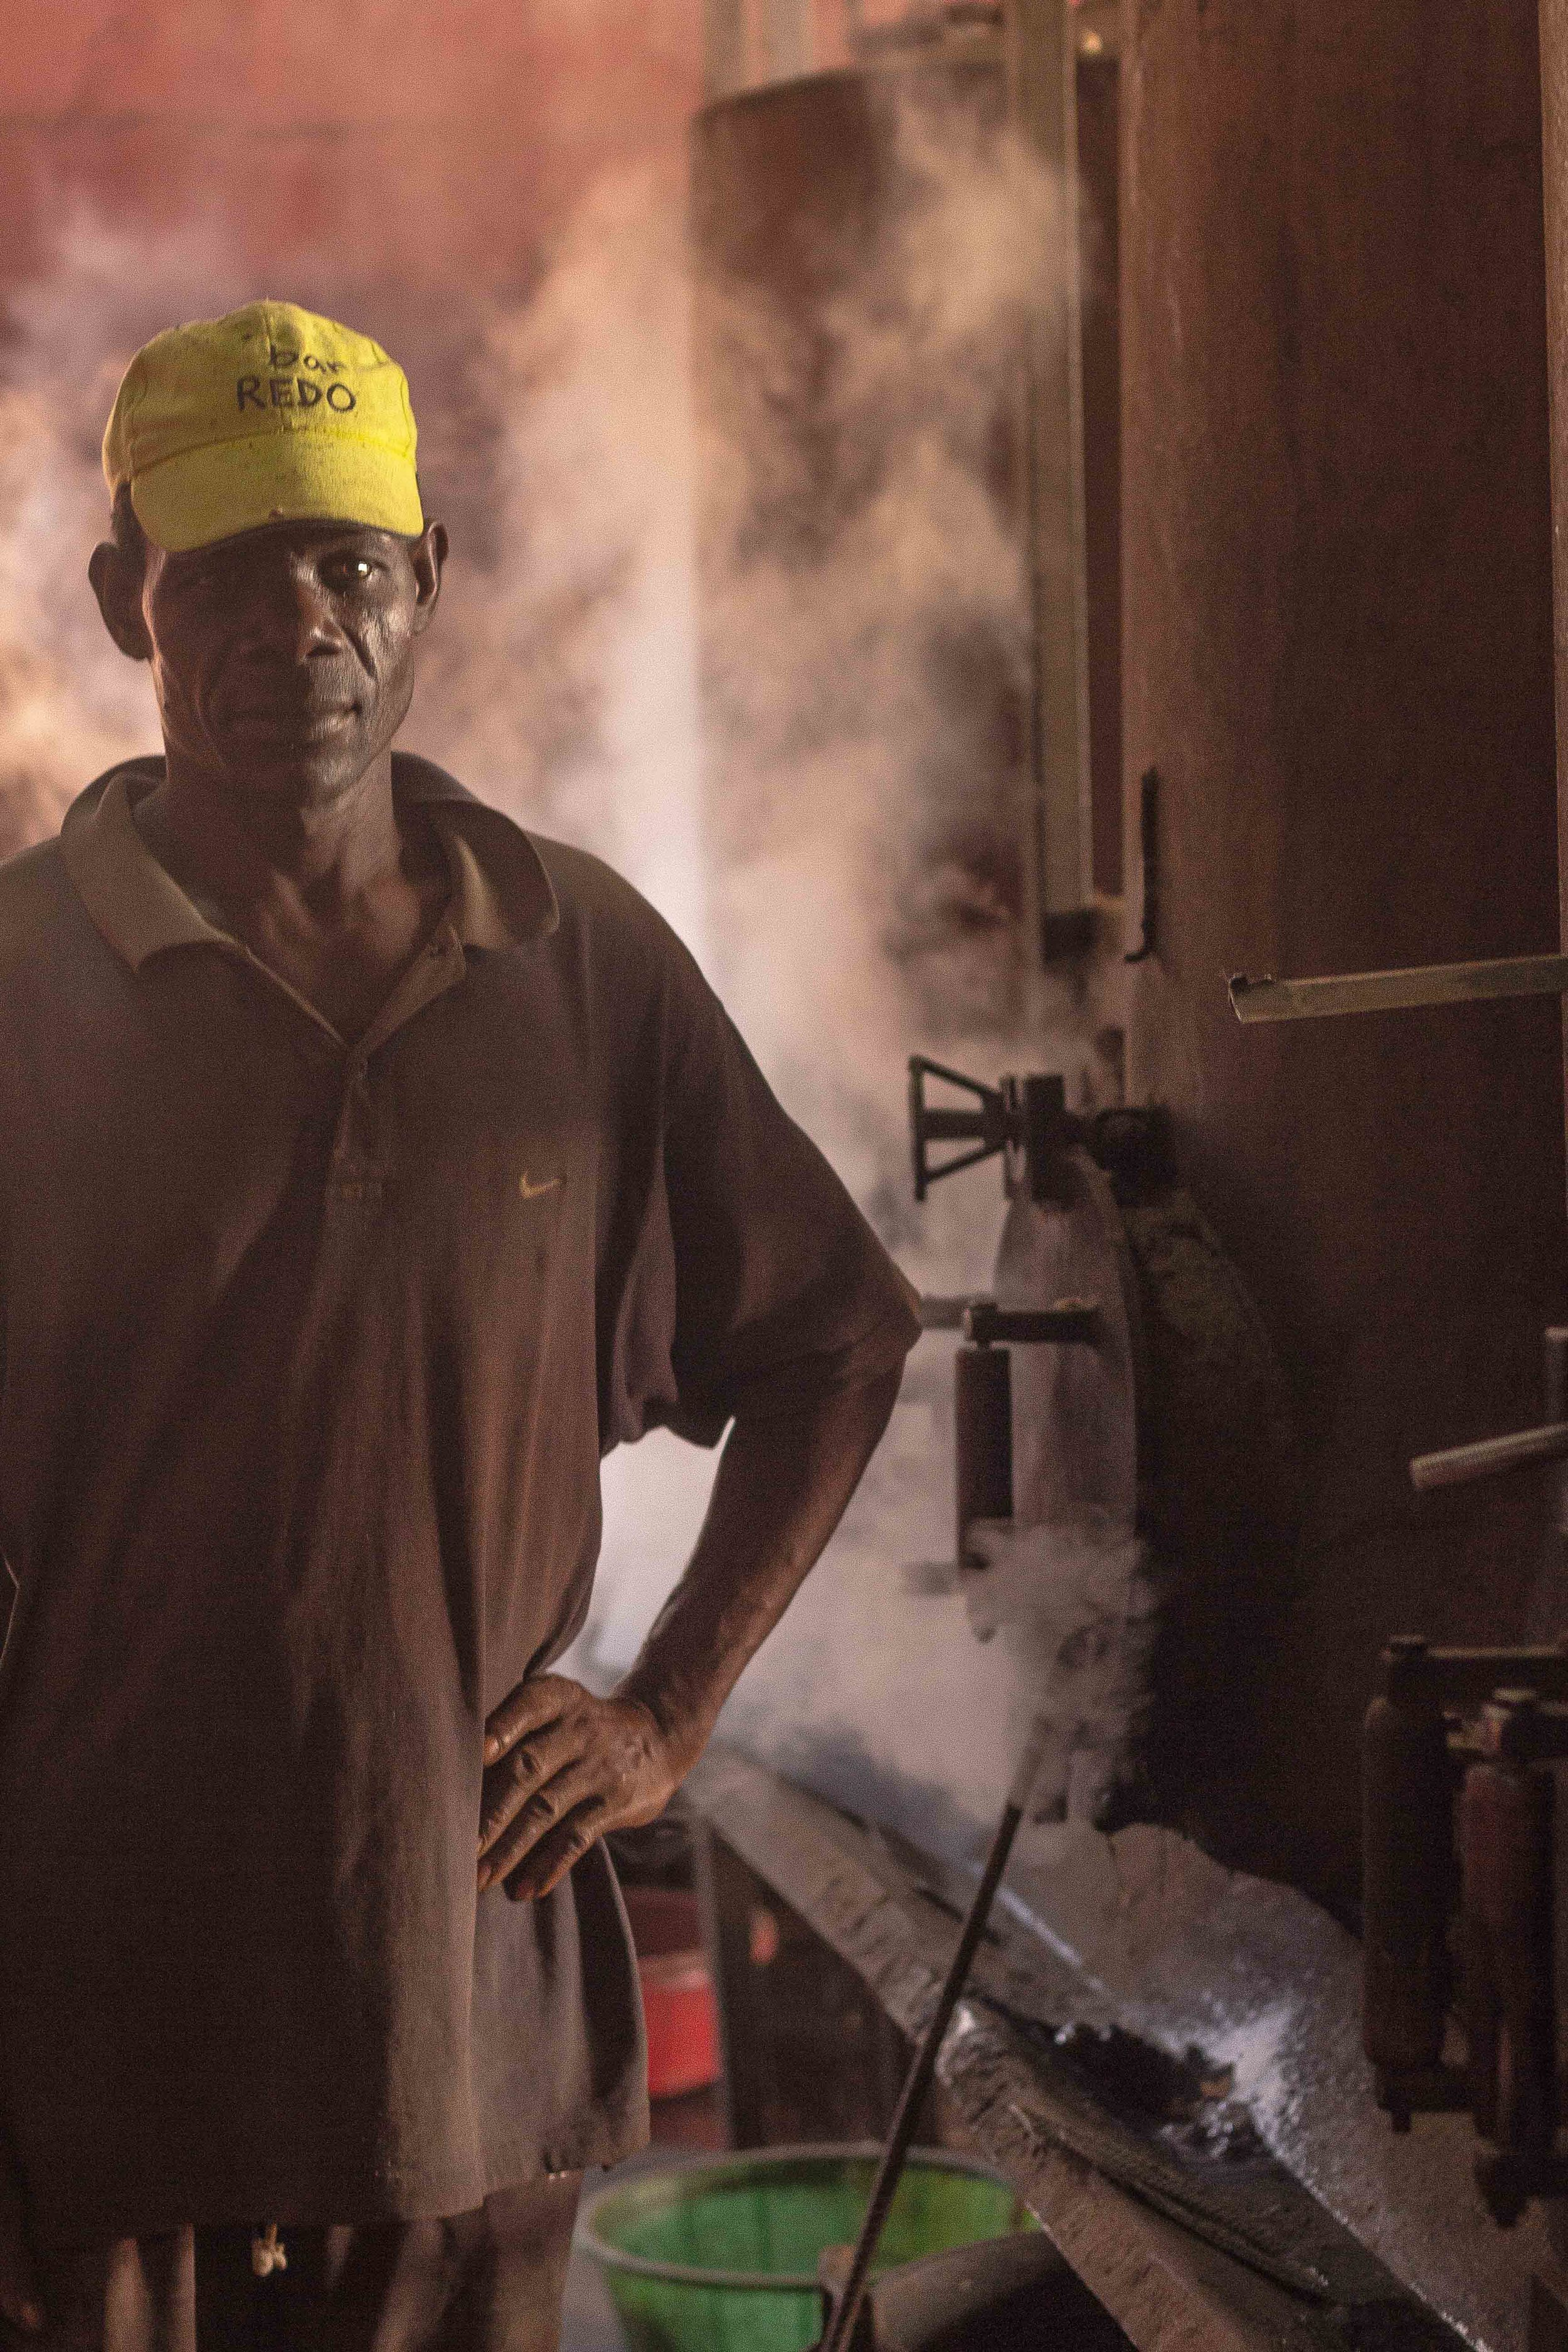 Anchilo district, Nampula province  – A worker in the cooking section of the Condor Nuts factory waits while the cashew nuts are cooked in the boilers |  Um trabalhador na secção de cozedura na fábrica da Condor Nuts espera as castanhas